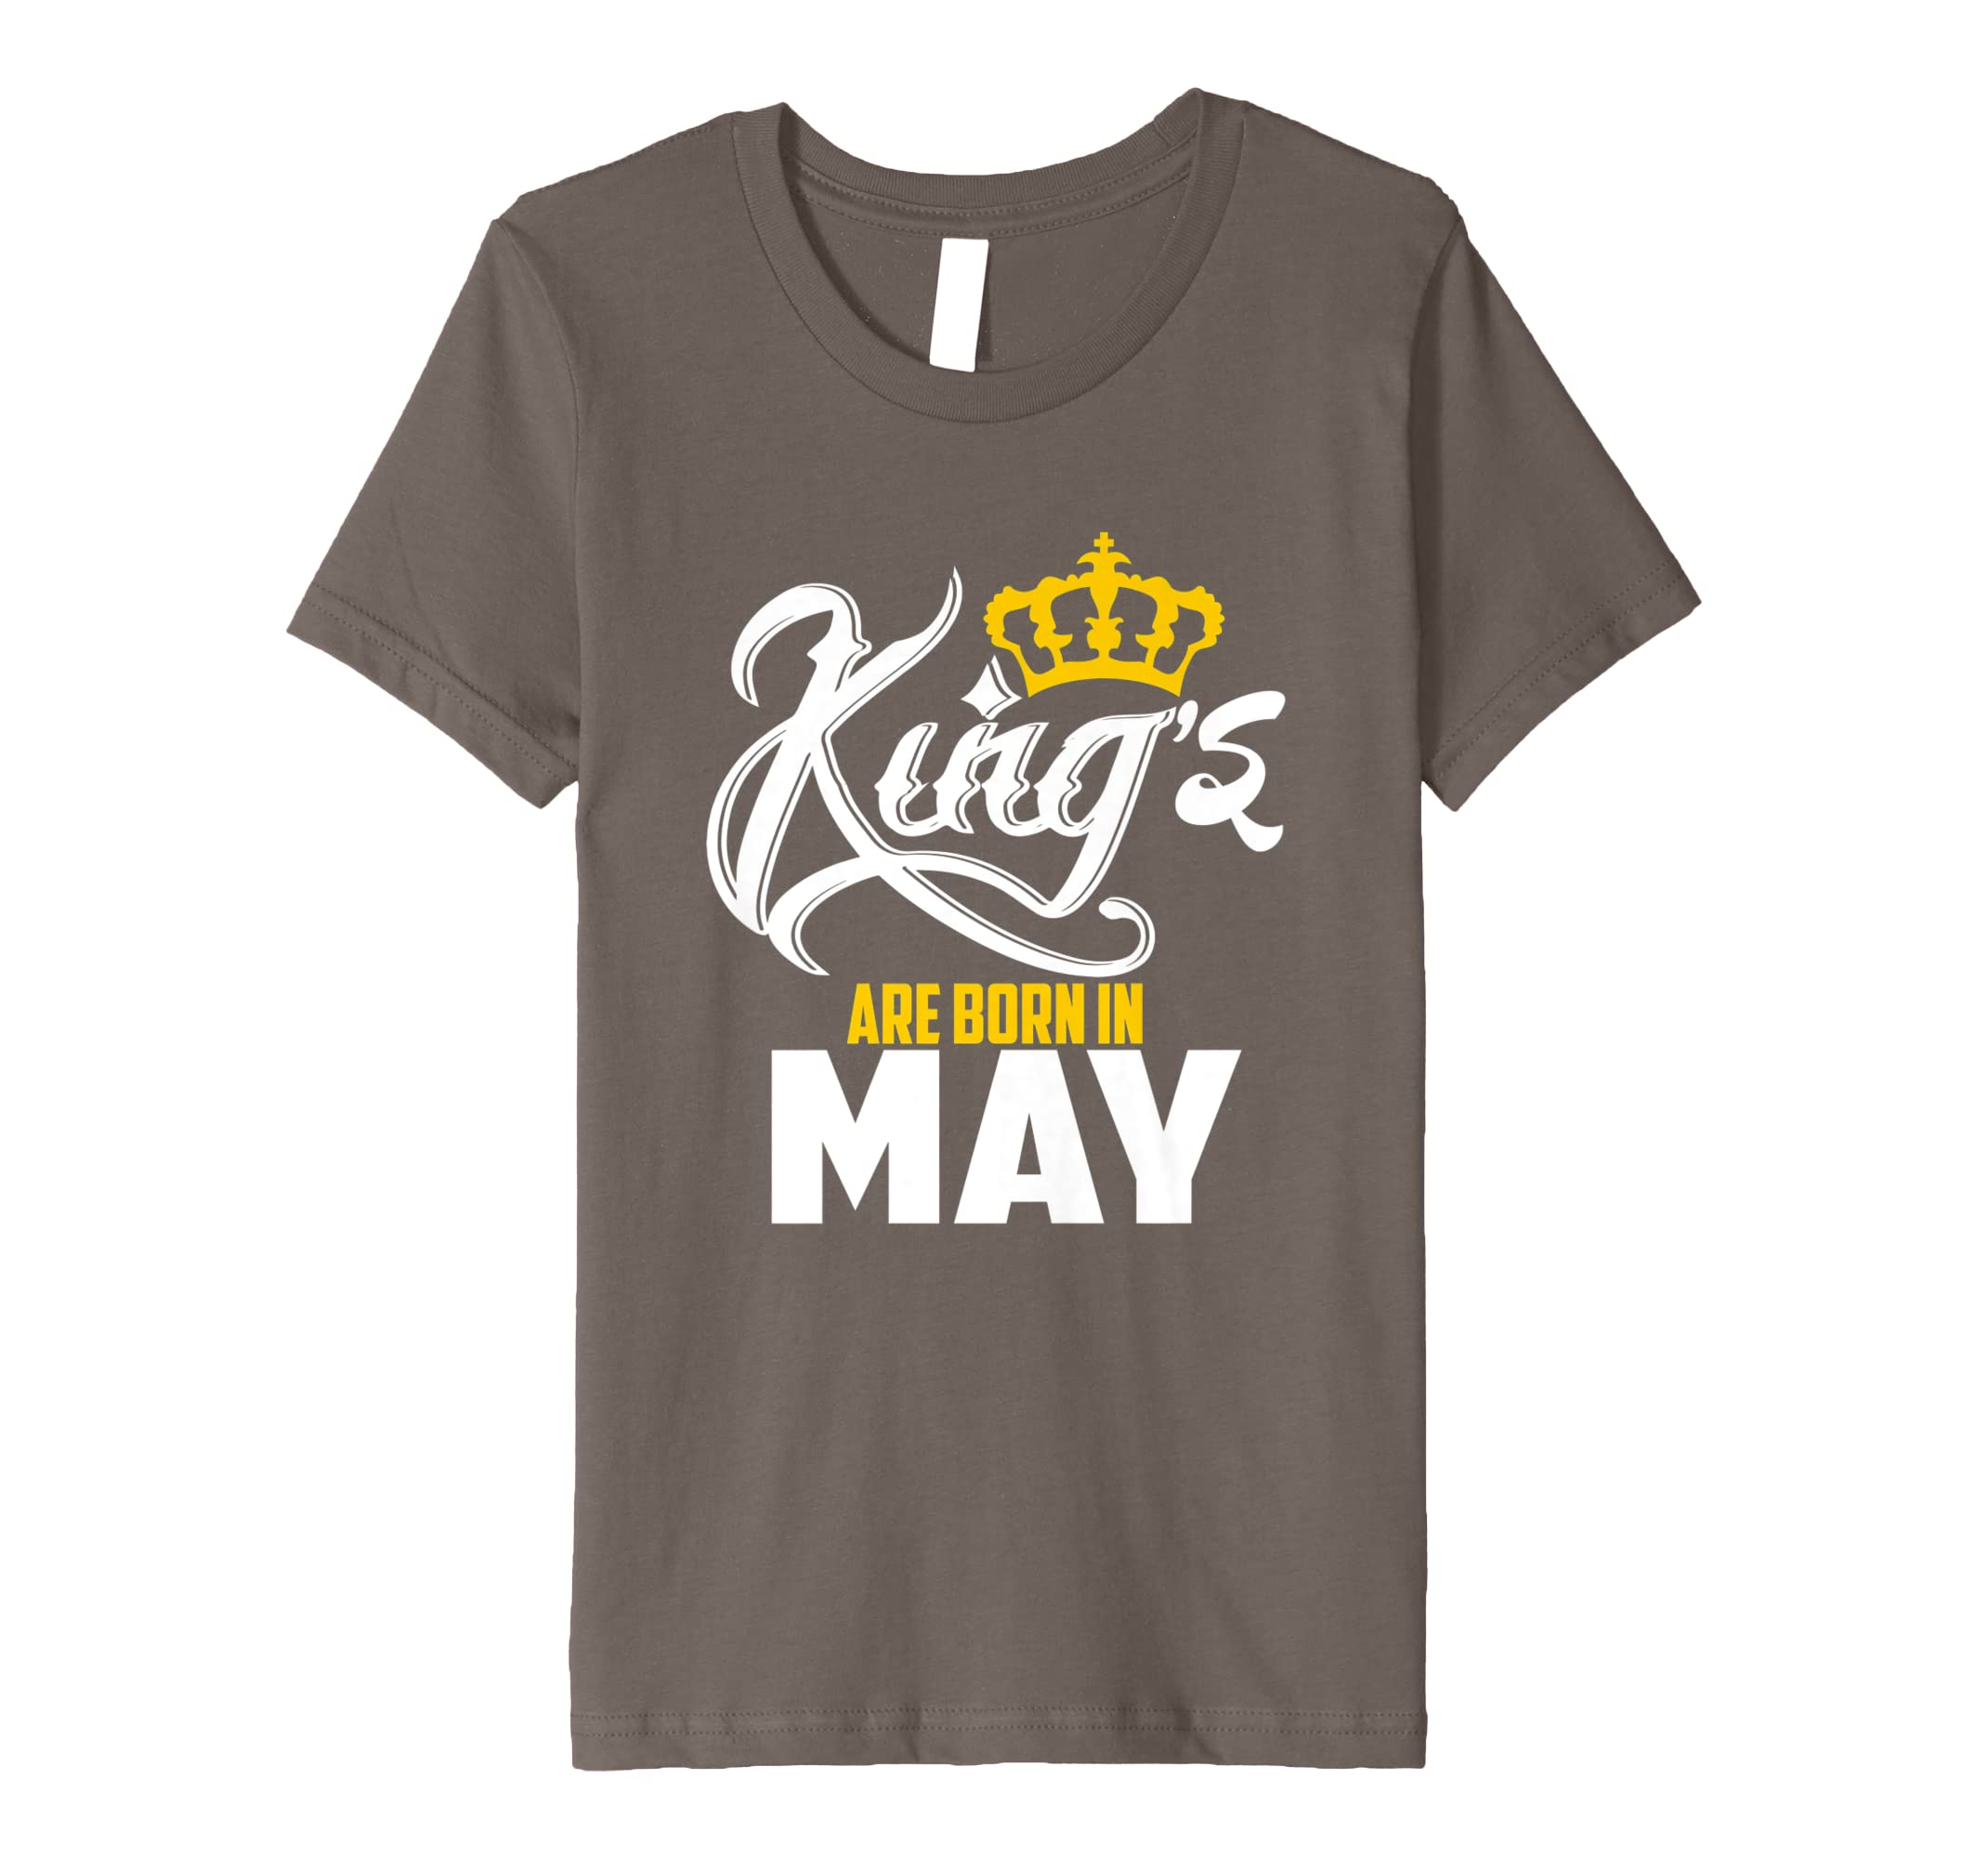 68c8989c292 Amazon.com  Kings Legends are born in May birthday t-shirt  Clothing